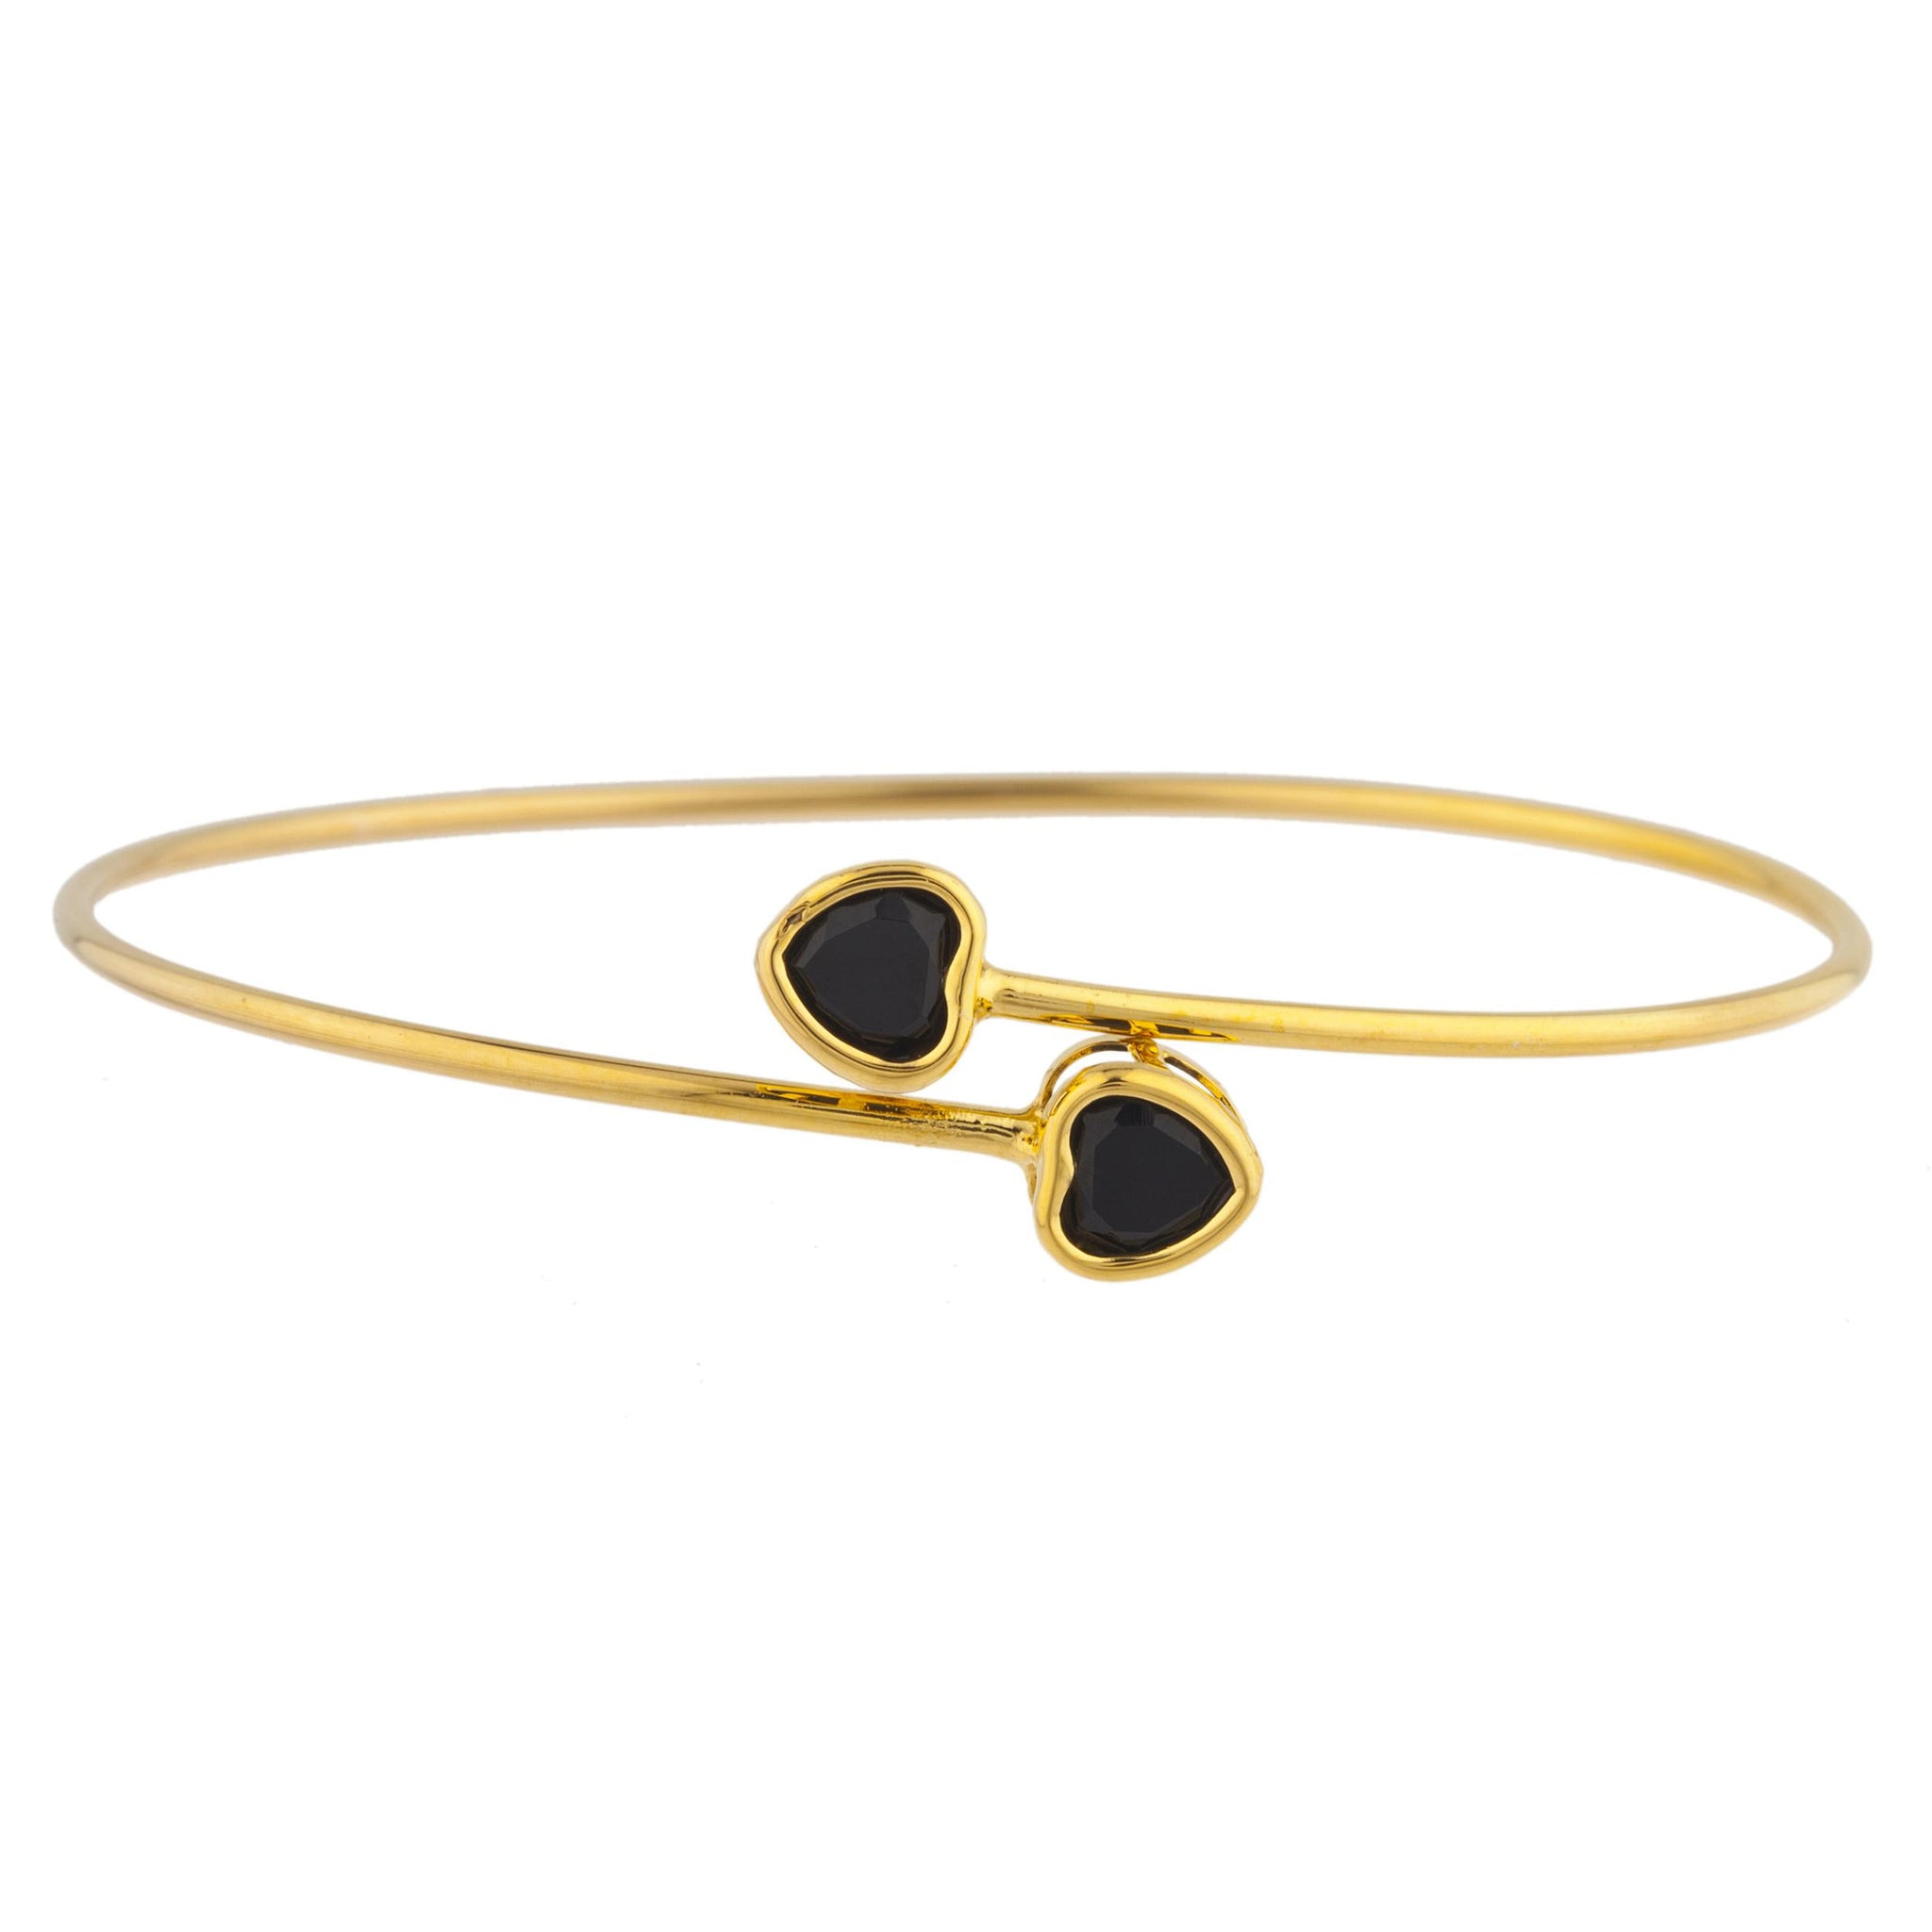 14Kt Yellow Gold Plated Genuine Black Onyx Heart Bezel Bangle Bracelet